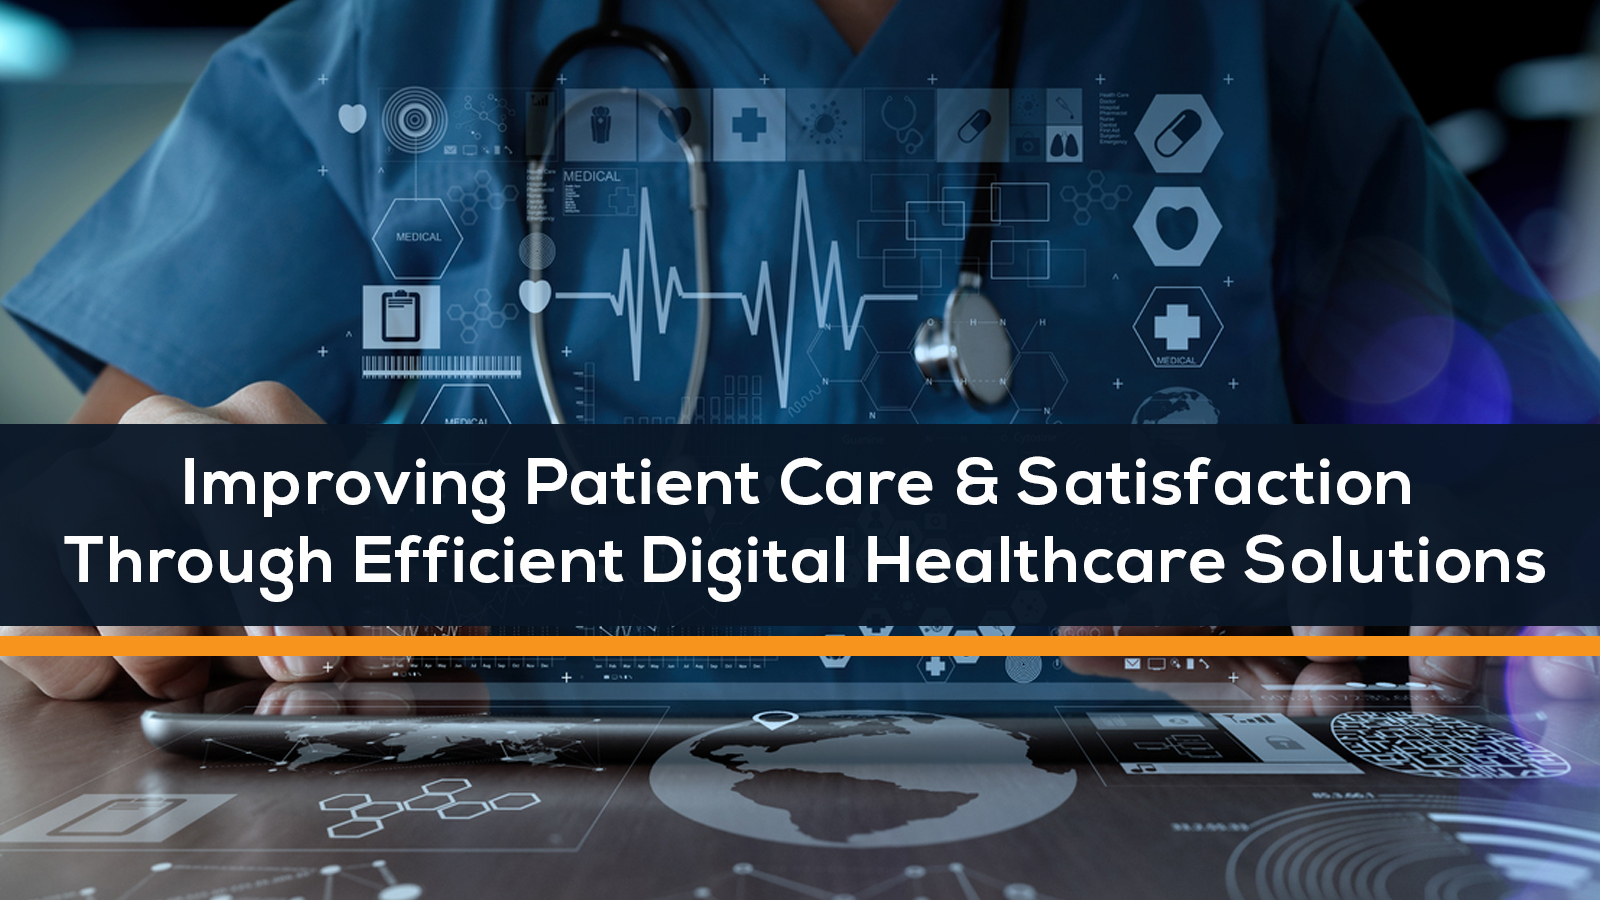 Improving Patient Care & Satisfaction Through Efficient Digital Healthcare Solutions